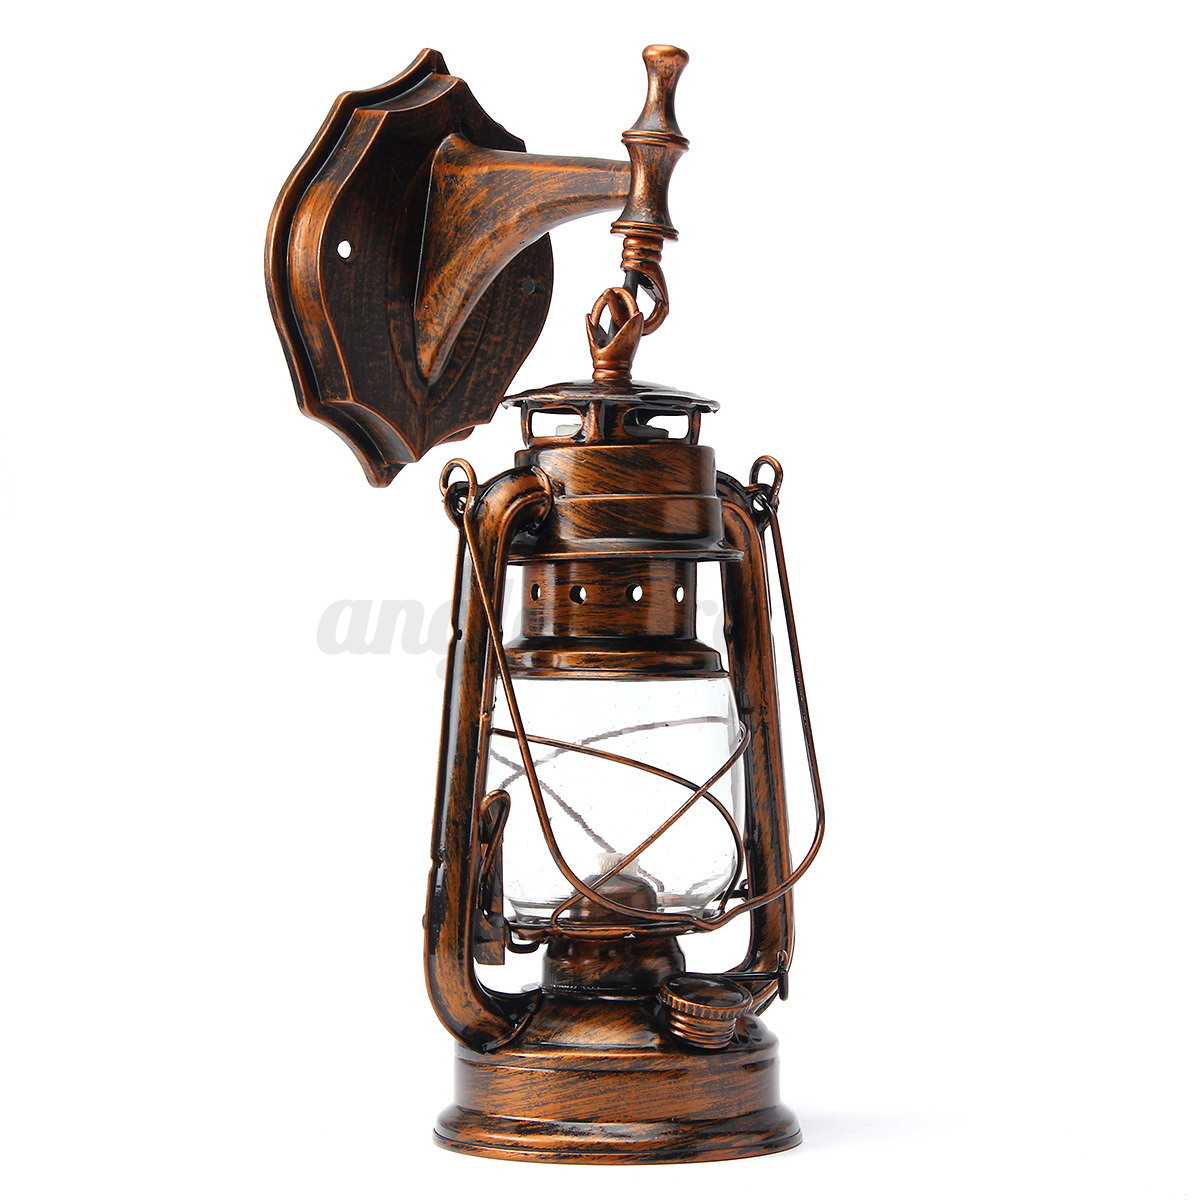 retro wall lighting sconce vintage exterior lantern antique fixture outdoor in ebay. Black Bedroom Furniture Sets. Home Design Ideas